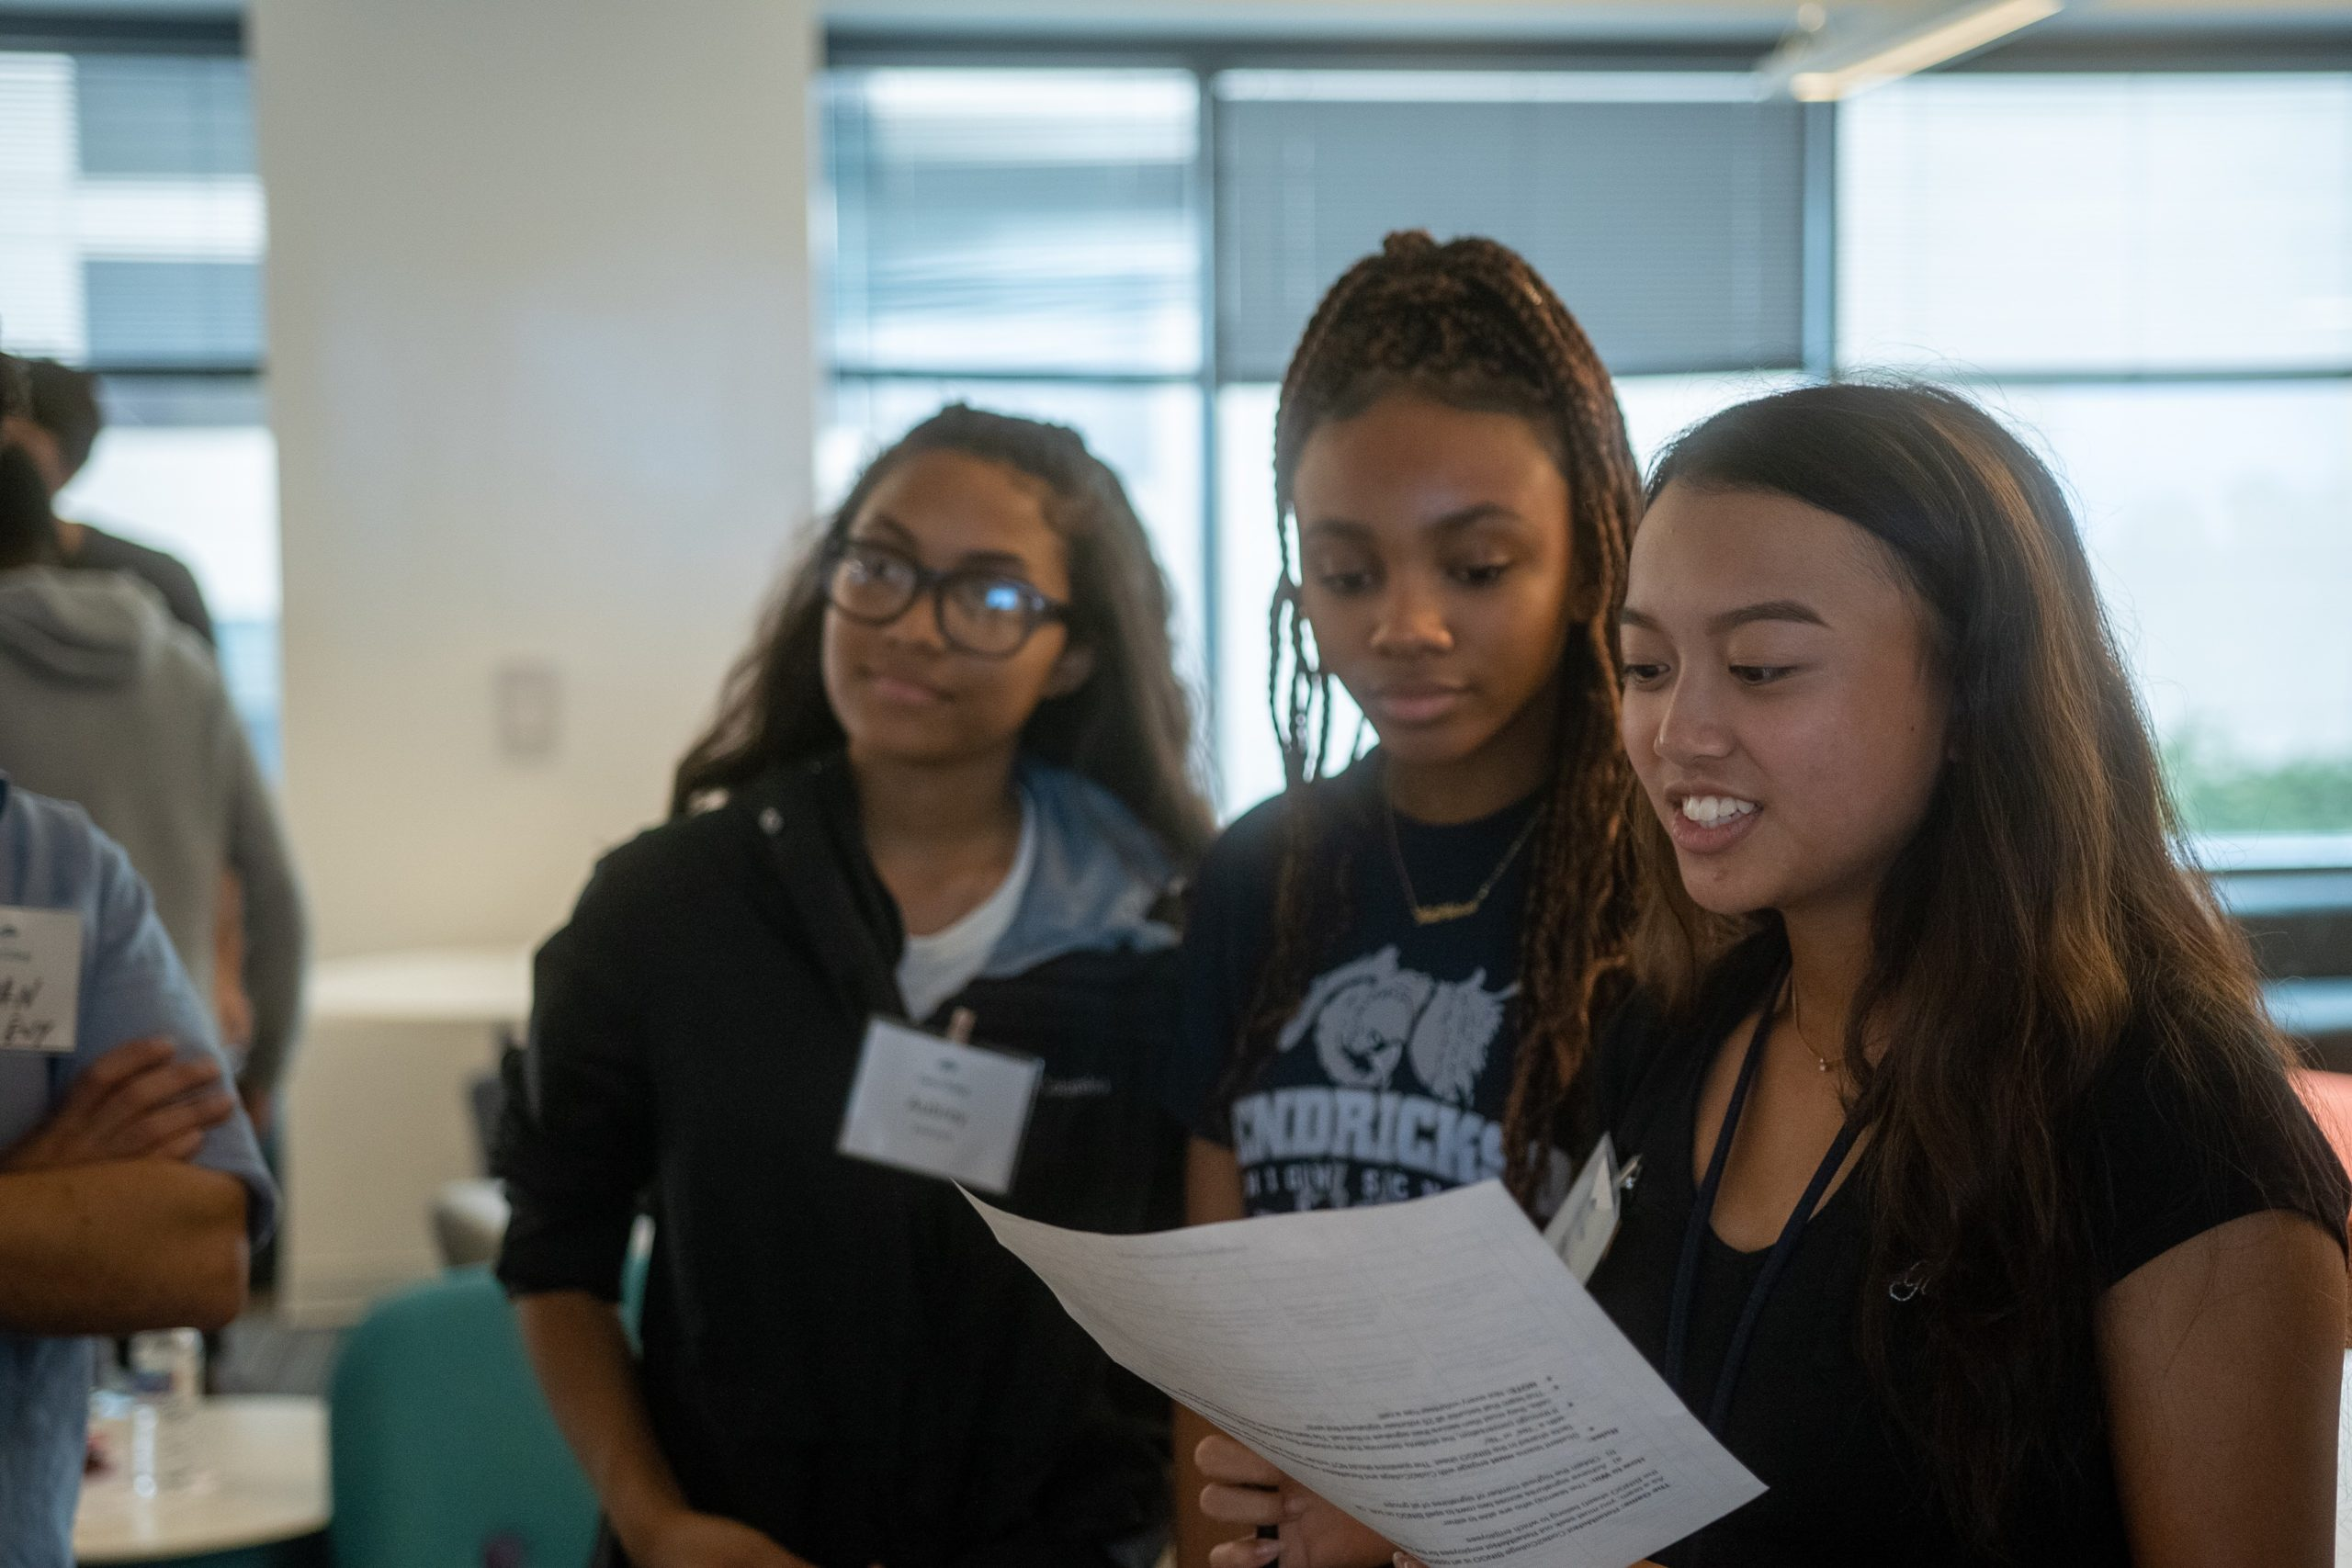 Aubrey VanZandt (C2C '20), Monae Thompson (C2C '19), Angelyna Le (C2C '20) playing an epic game of Code2College BINGO at our RetailMeNot Workshop (September 2019)